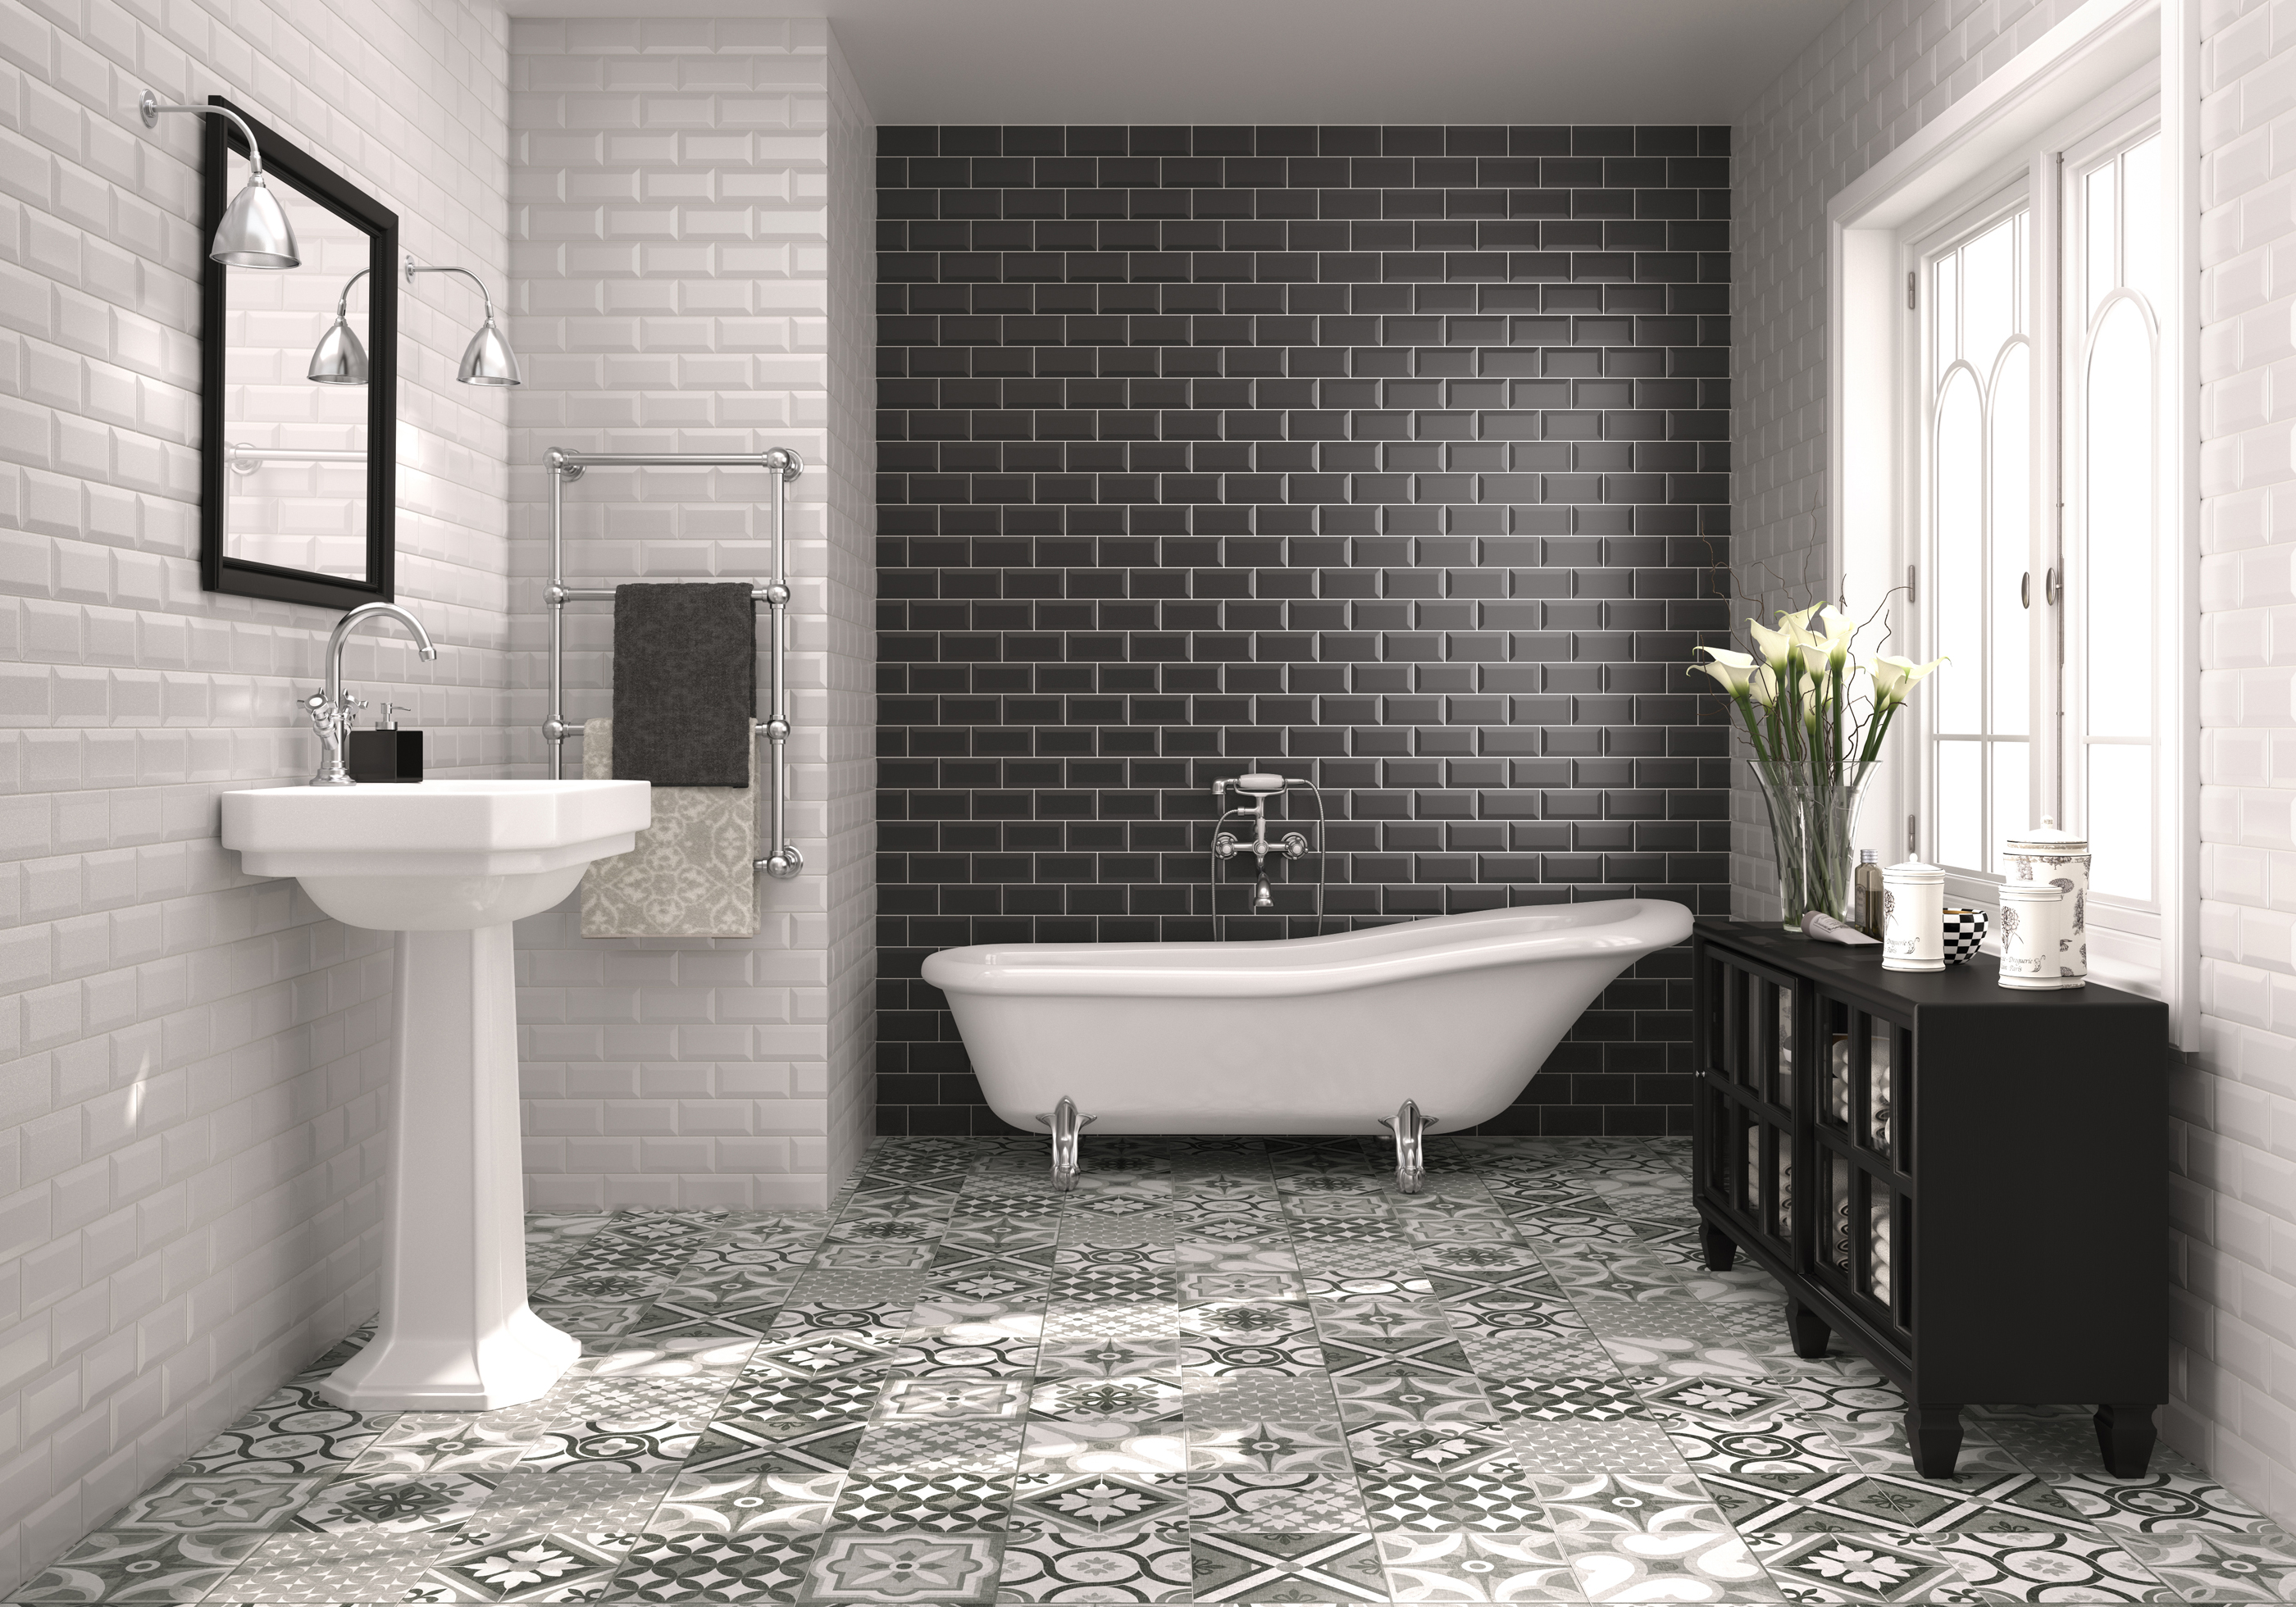 Bathroom Tiles Colour Combination how to make a statement with bold bathroom tiles | around the